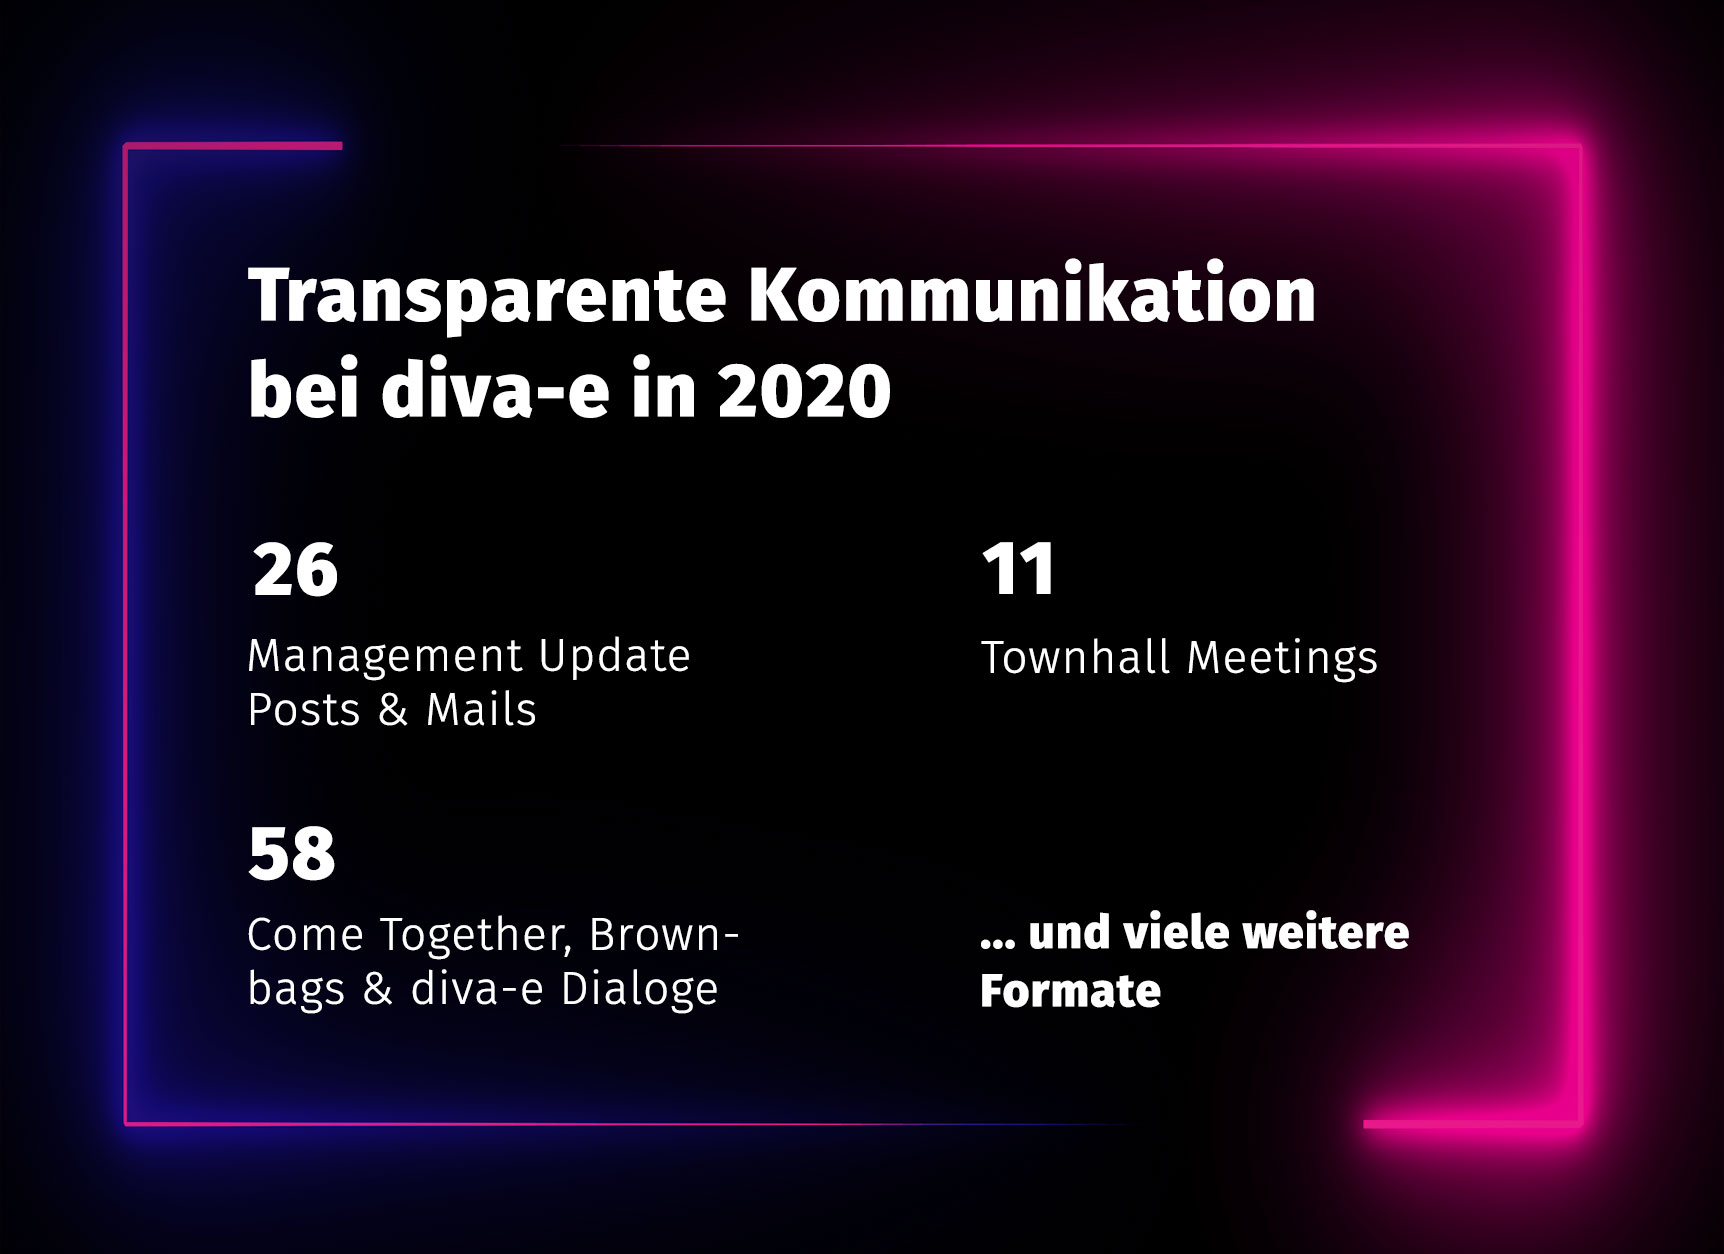 The key to transparency – wie diva-e fließende Kommunikation ermöglicht